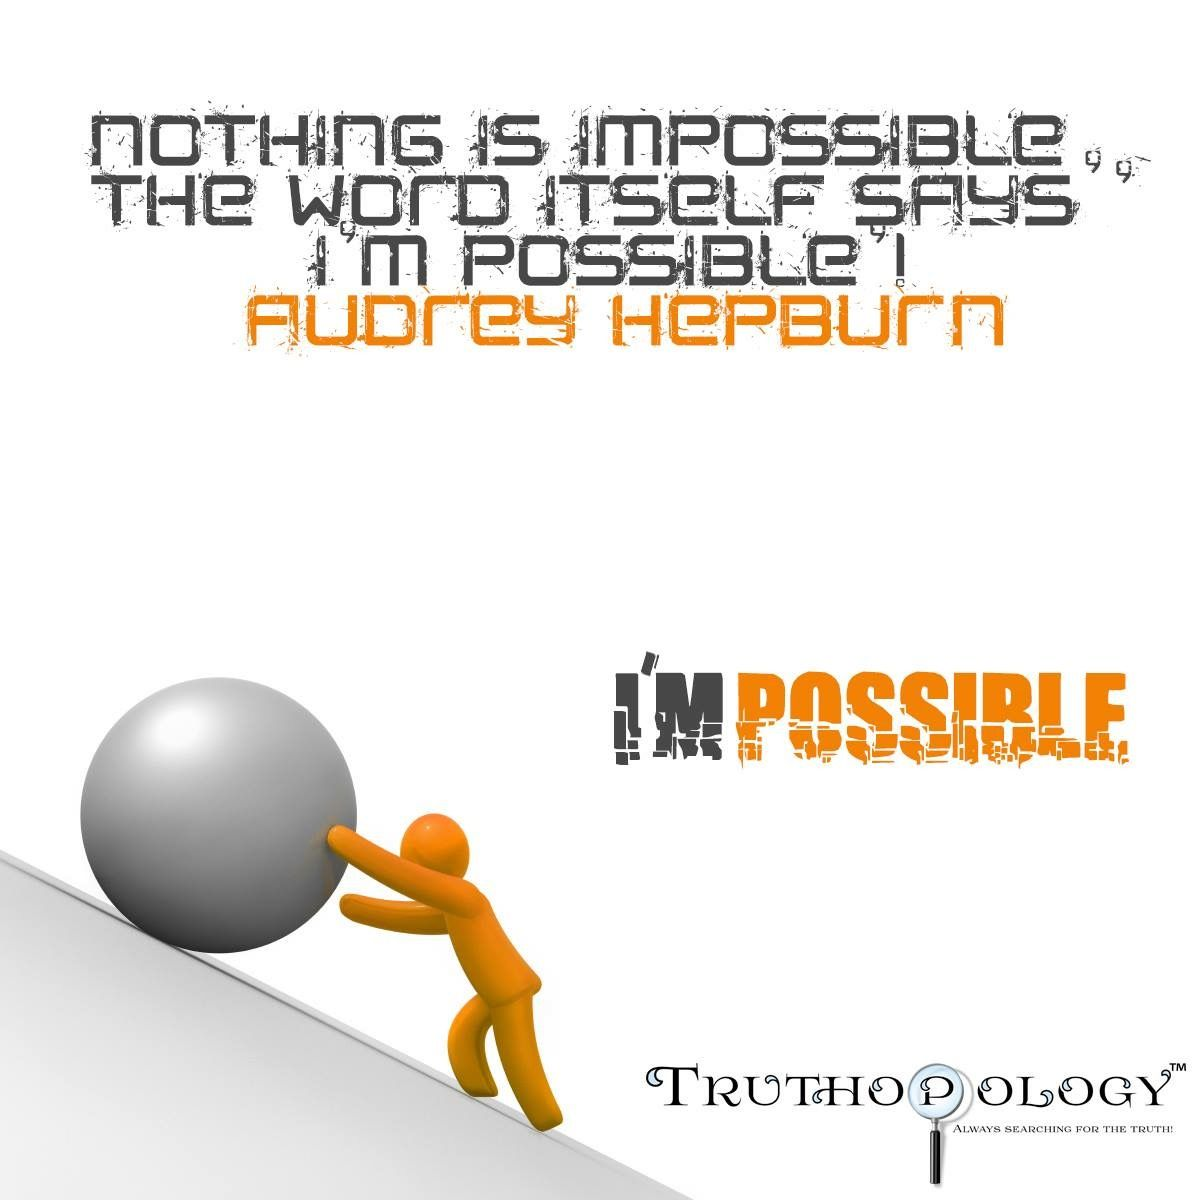 All things are possible! #AudreyHepburn #Possible #Impossible #Truth #Search #Truthopology